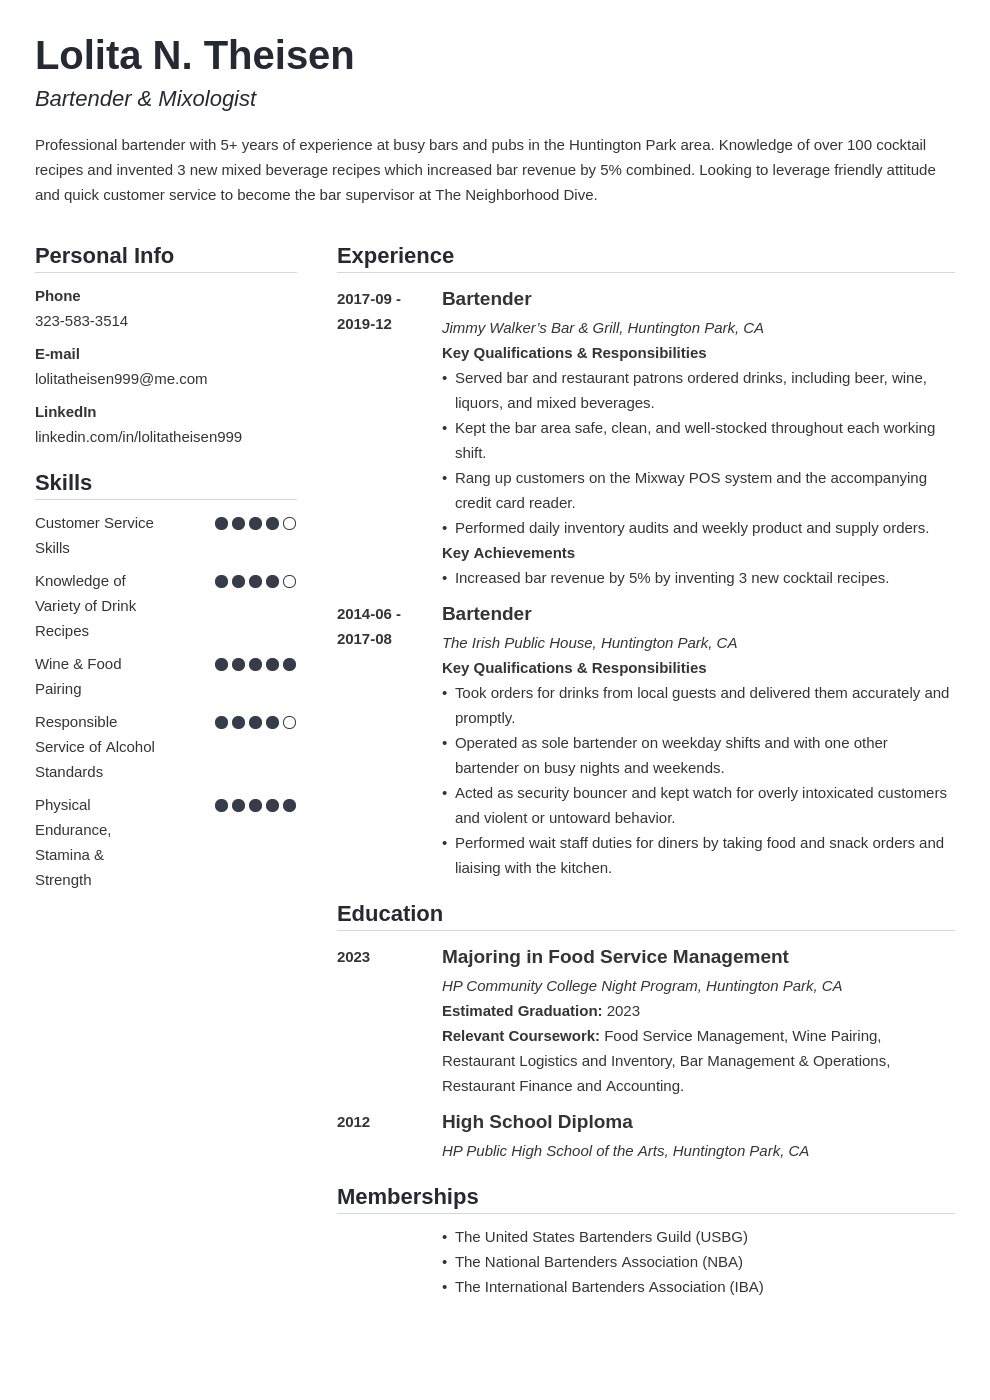 Bartender Resume: Sample & Complete Guide [+20 Examples]